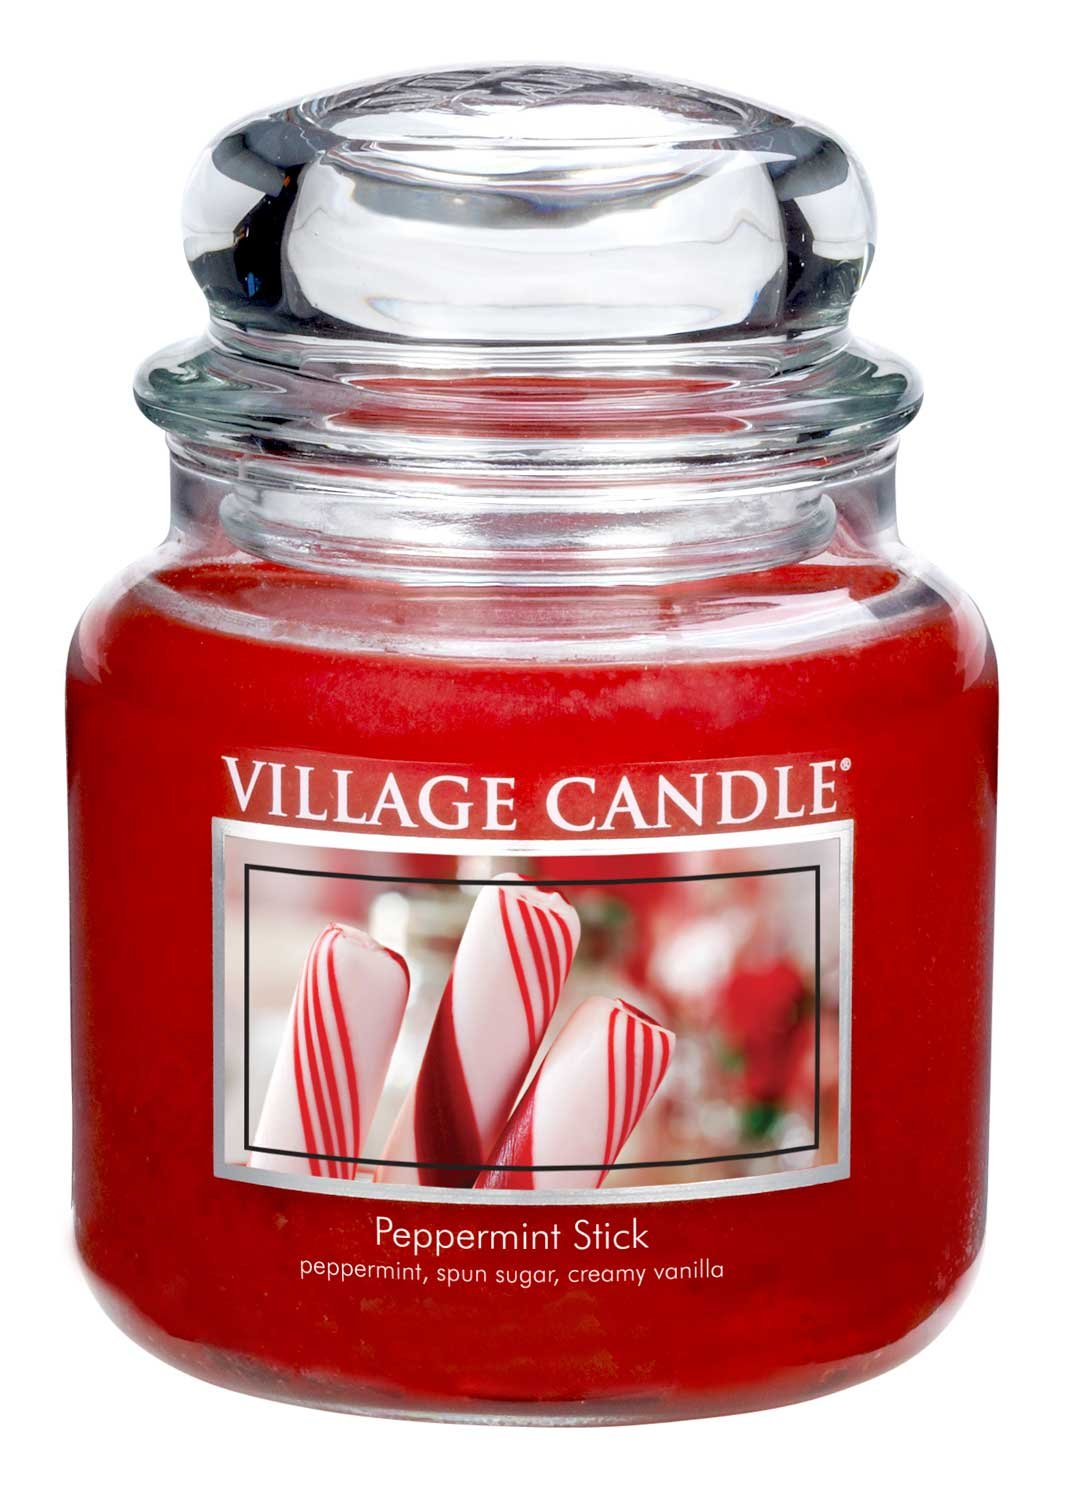 Amazon.com: Village Candle Peppermint Stick 16 oz Glass Jar Scented ...